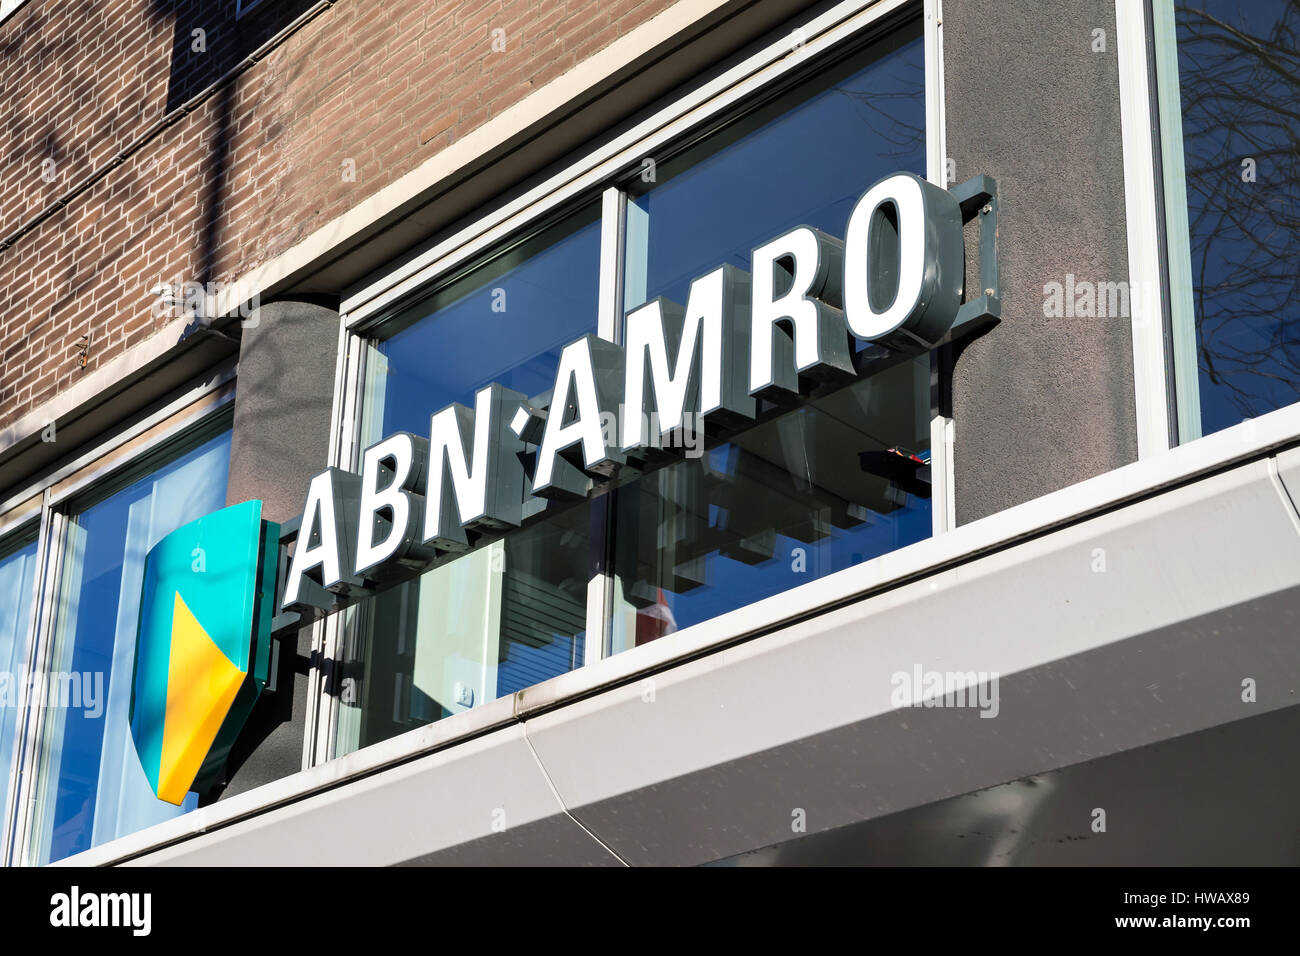 entrance of an ABN AMRO branch. ABN AMRO is the third-largest bank in the Netherlands. - Stock Image